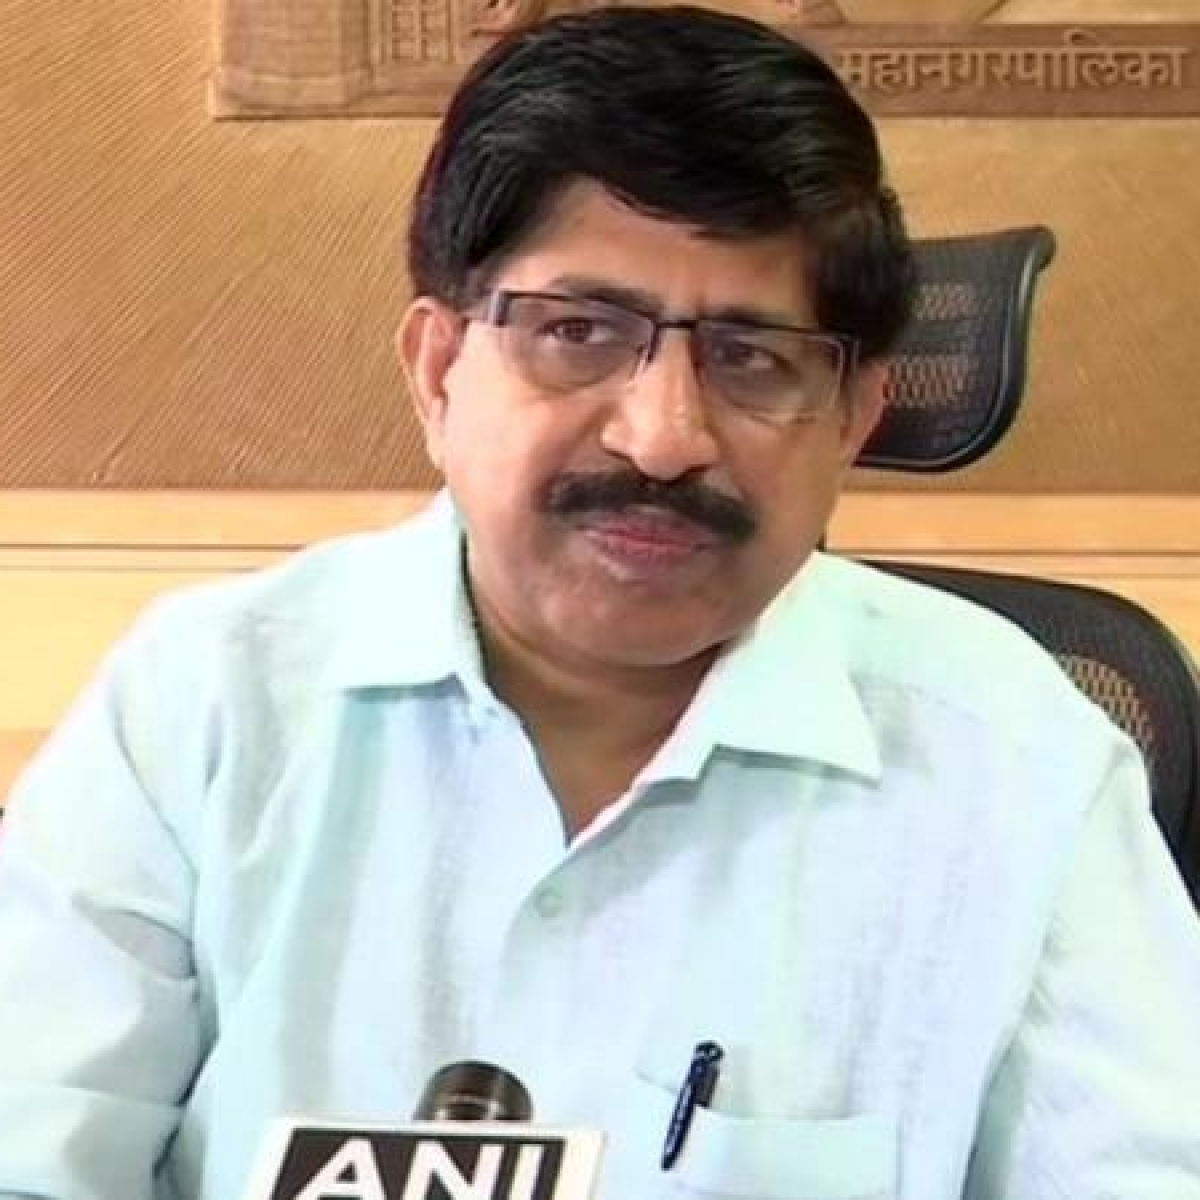 Coronavirus in Pune: Municipal Commissioner Shekhar Gaikwad transferred after speaking against imposition of lockdown